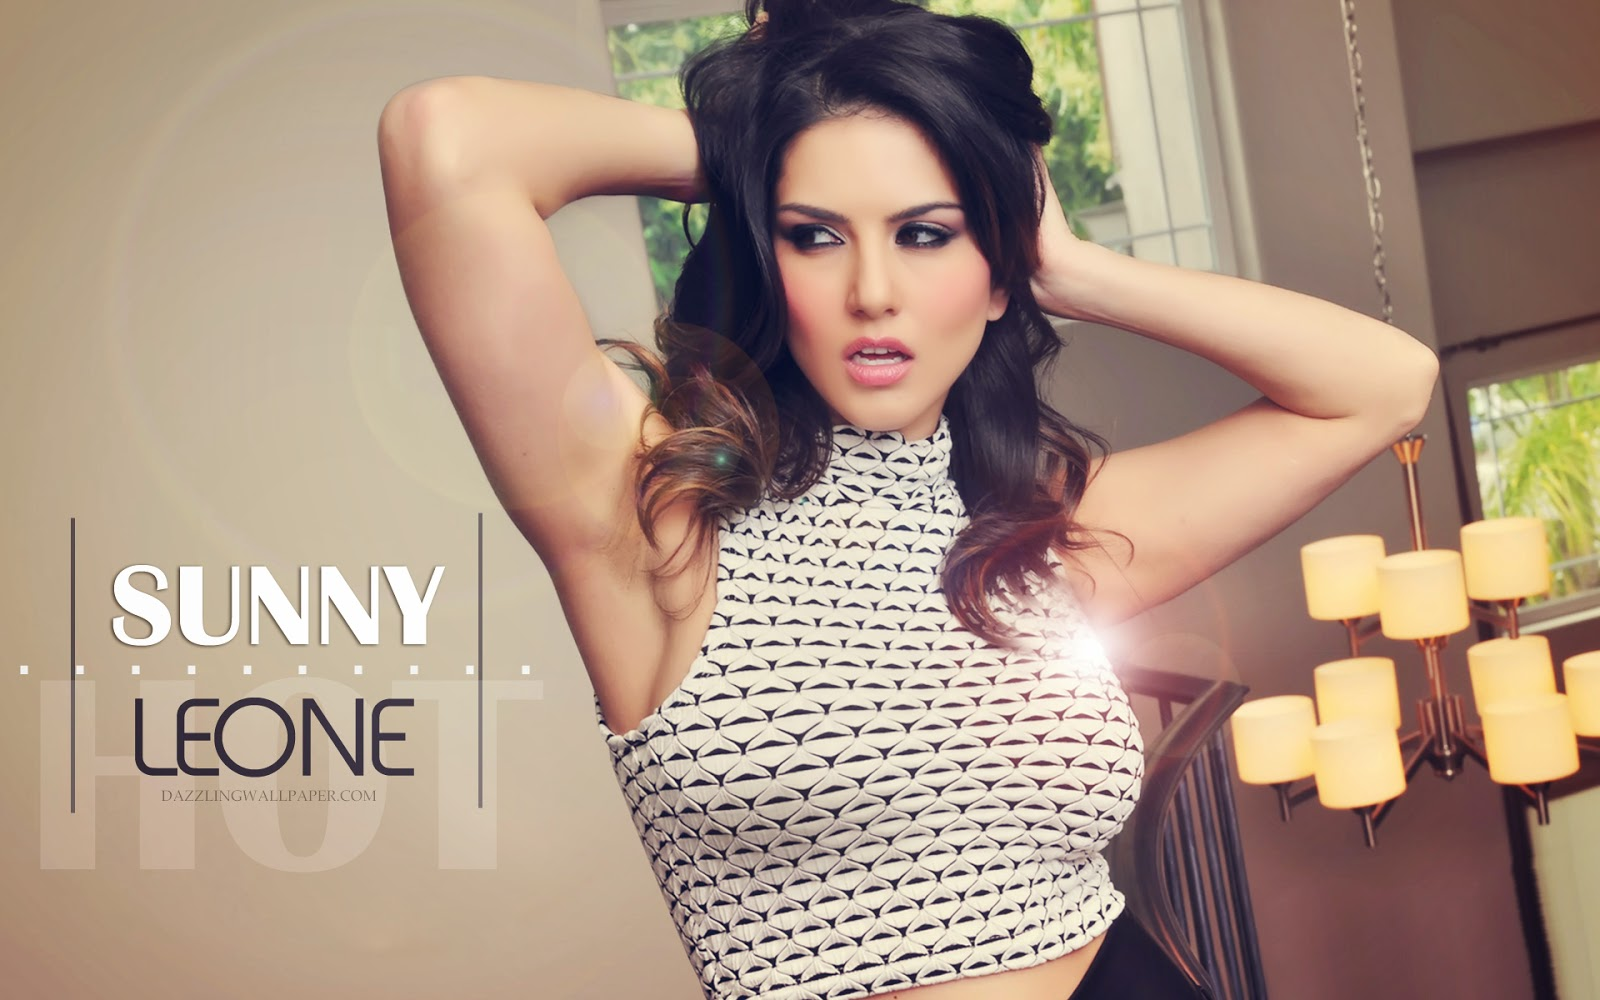 Actress sunny leone hot photos and hd wallpapers hot images - Sunny name wallpaper ...